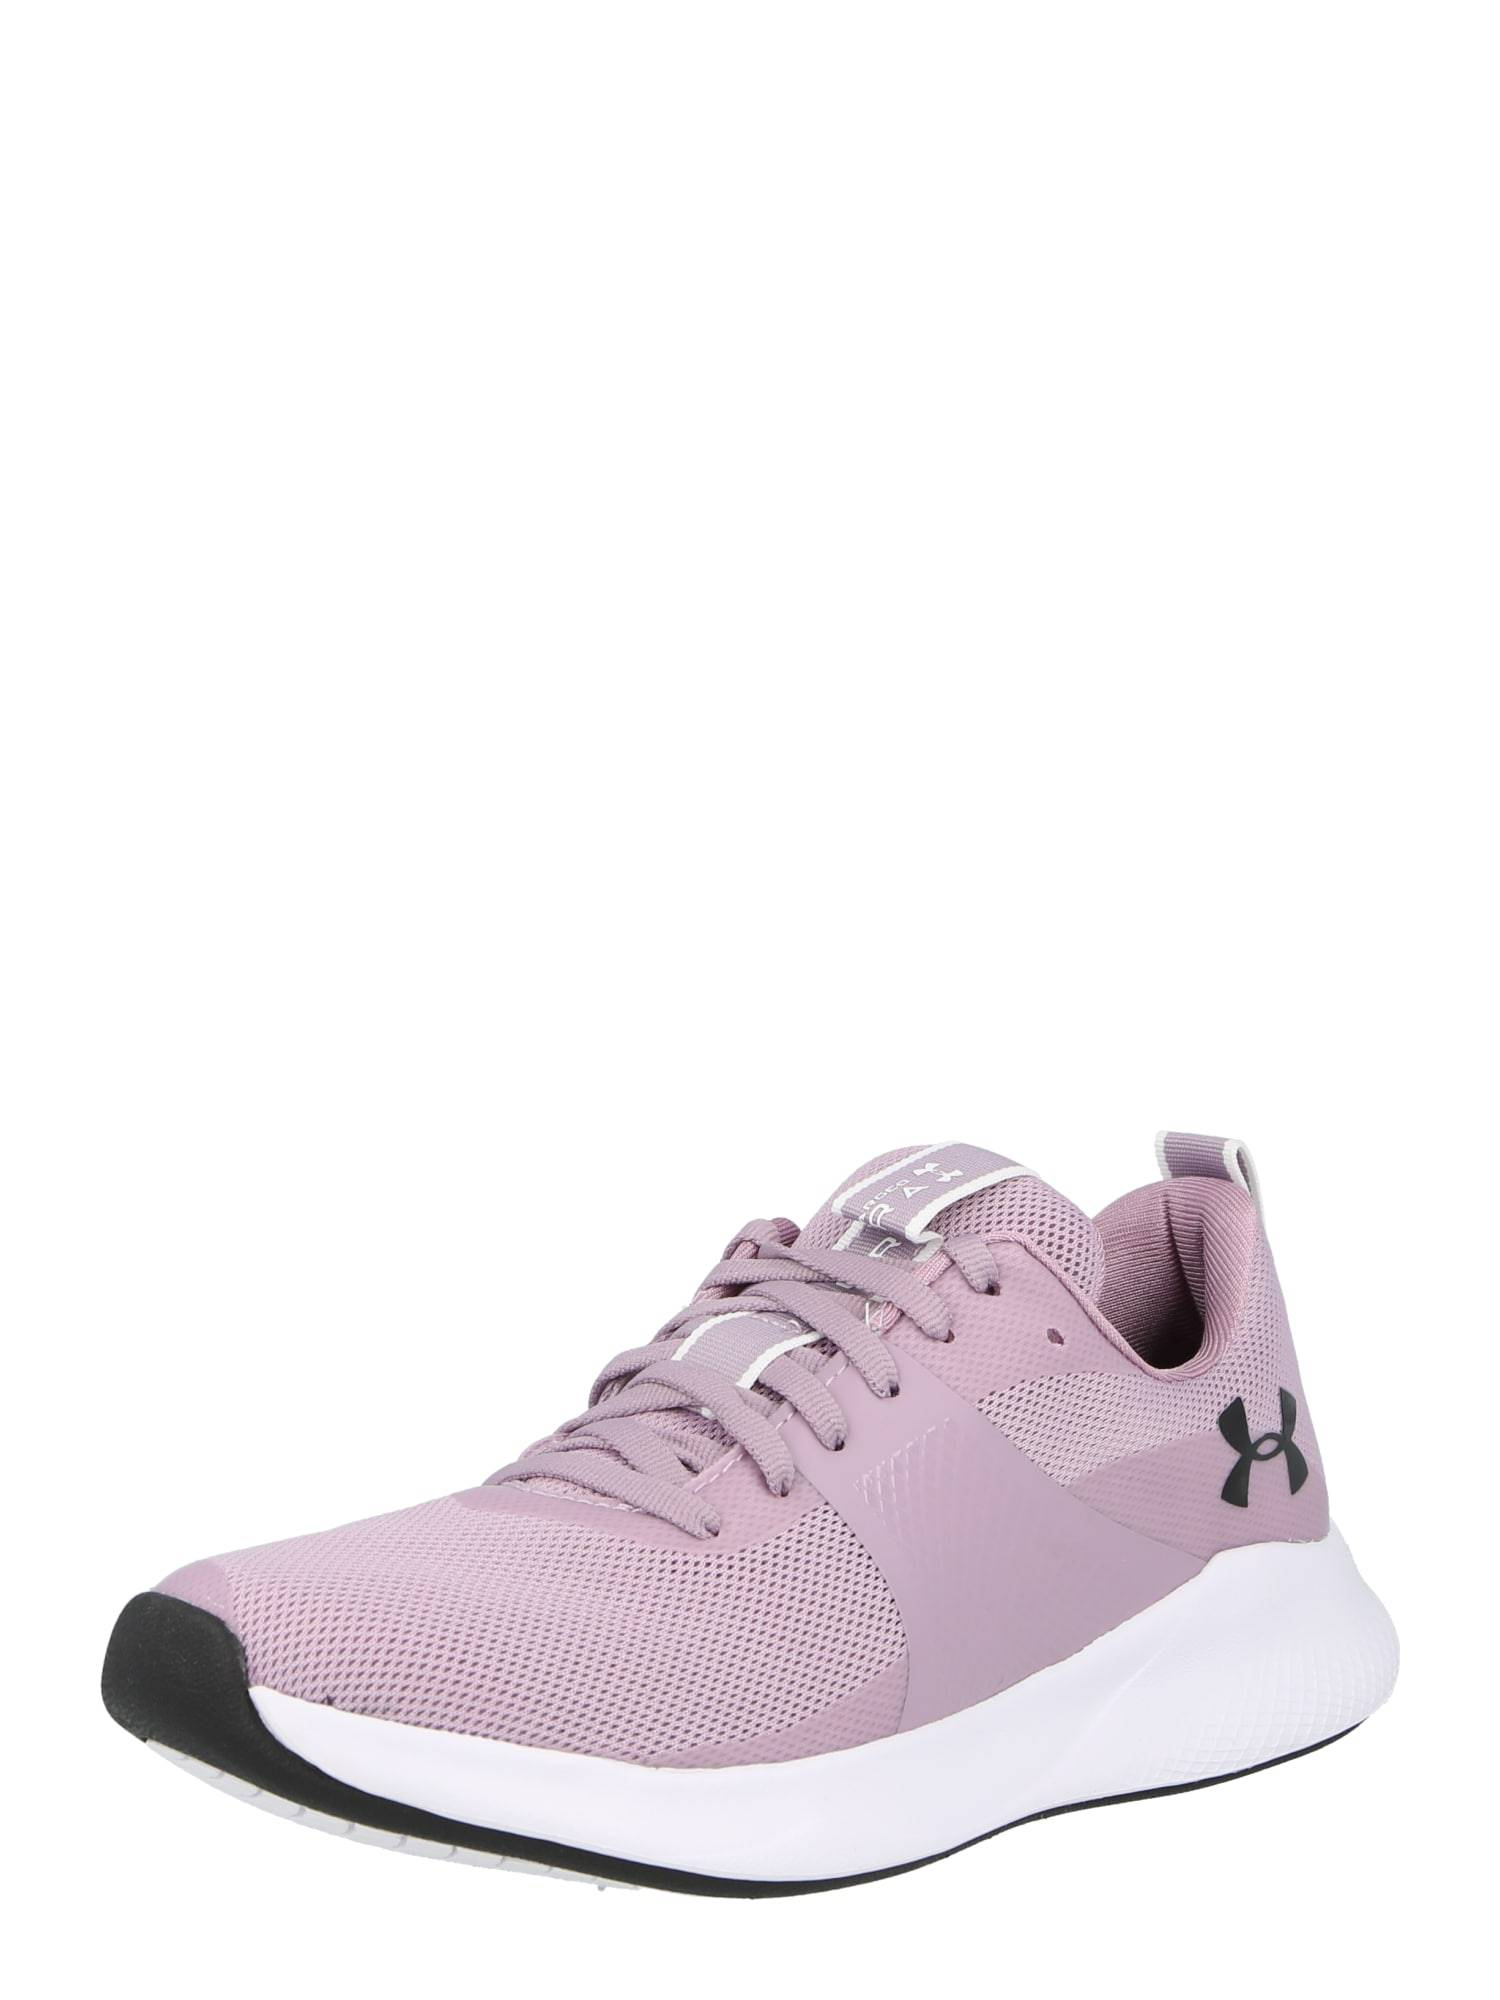 UNDER ARMOUR Chaussure de sport 'Charged Aurora'  - Rose - Taille: 7.5 - female